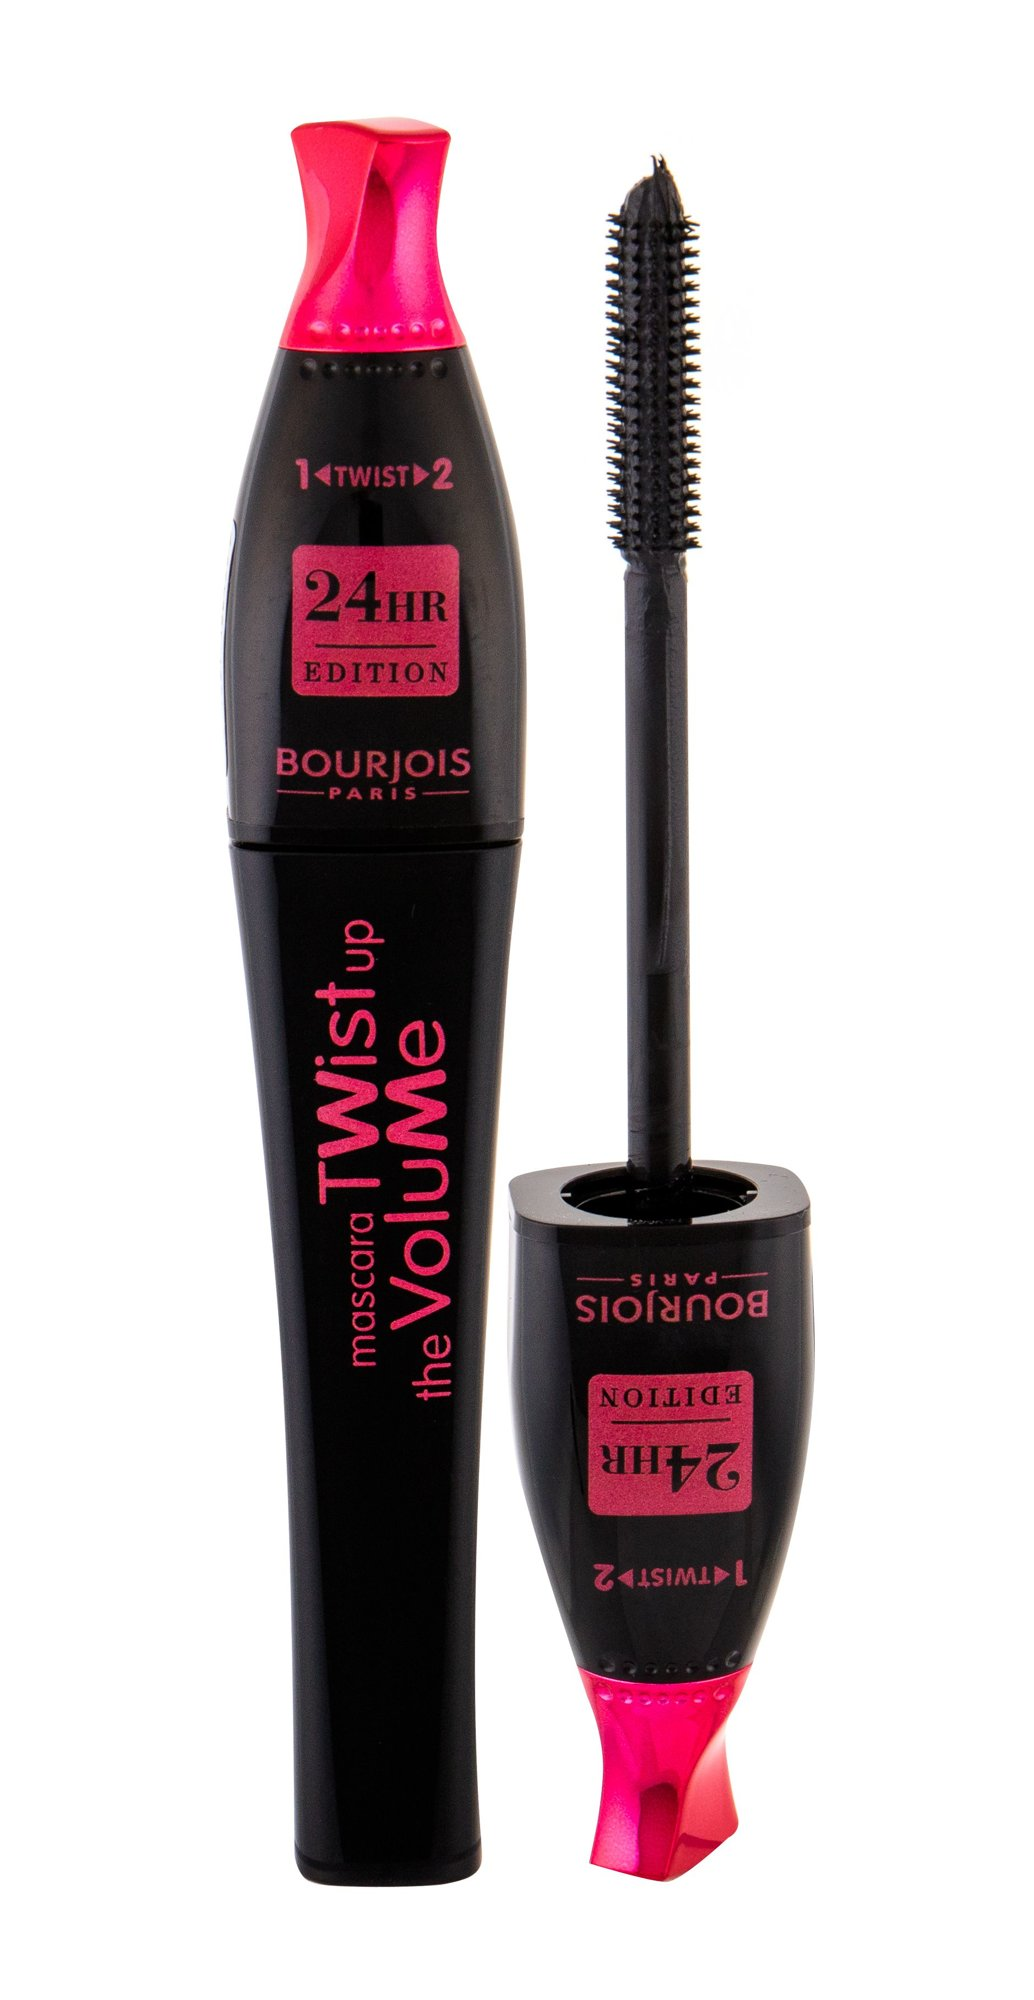 BOURJOIS Paris Twist Up The Volume Mascara 8ml 23 Black